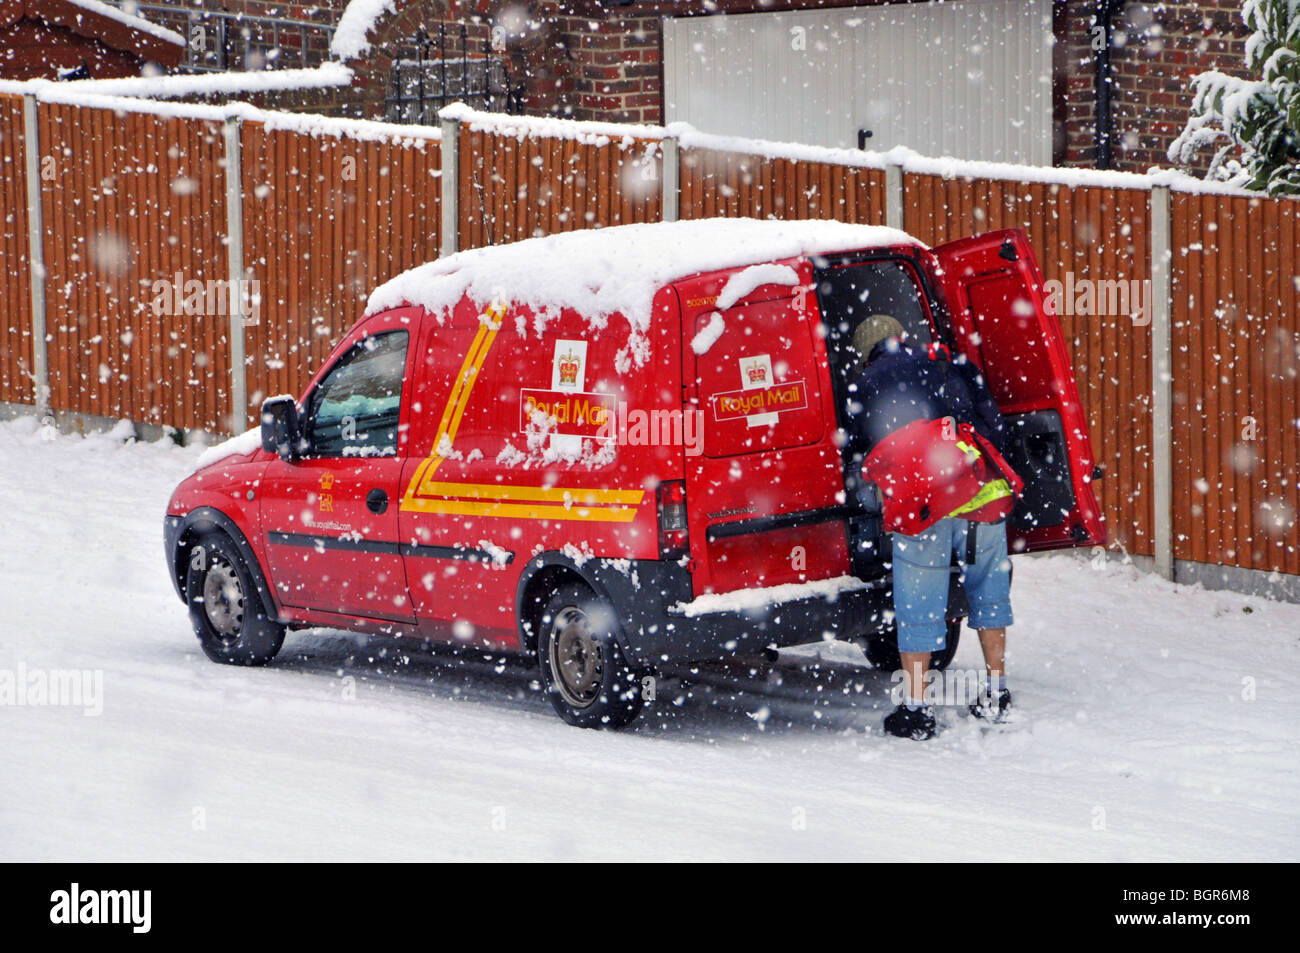 Royal Mail delivery van and postman in residential street during snow storm (number plate obscured) - Stock Image